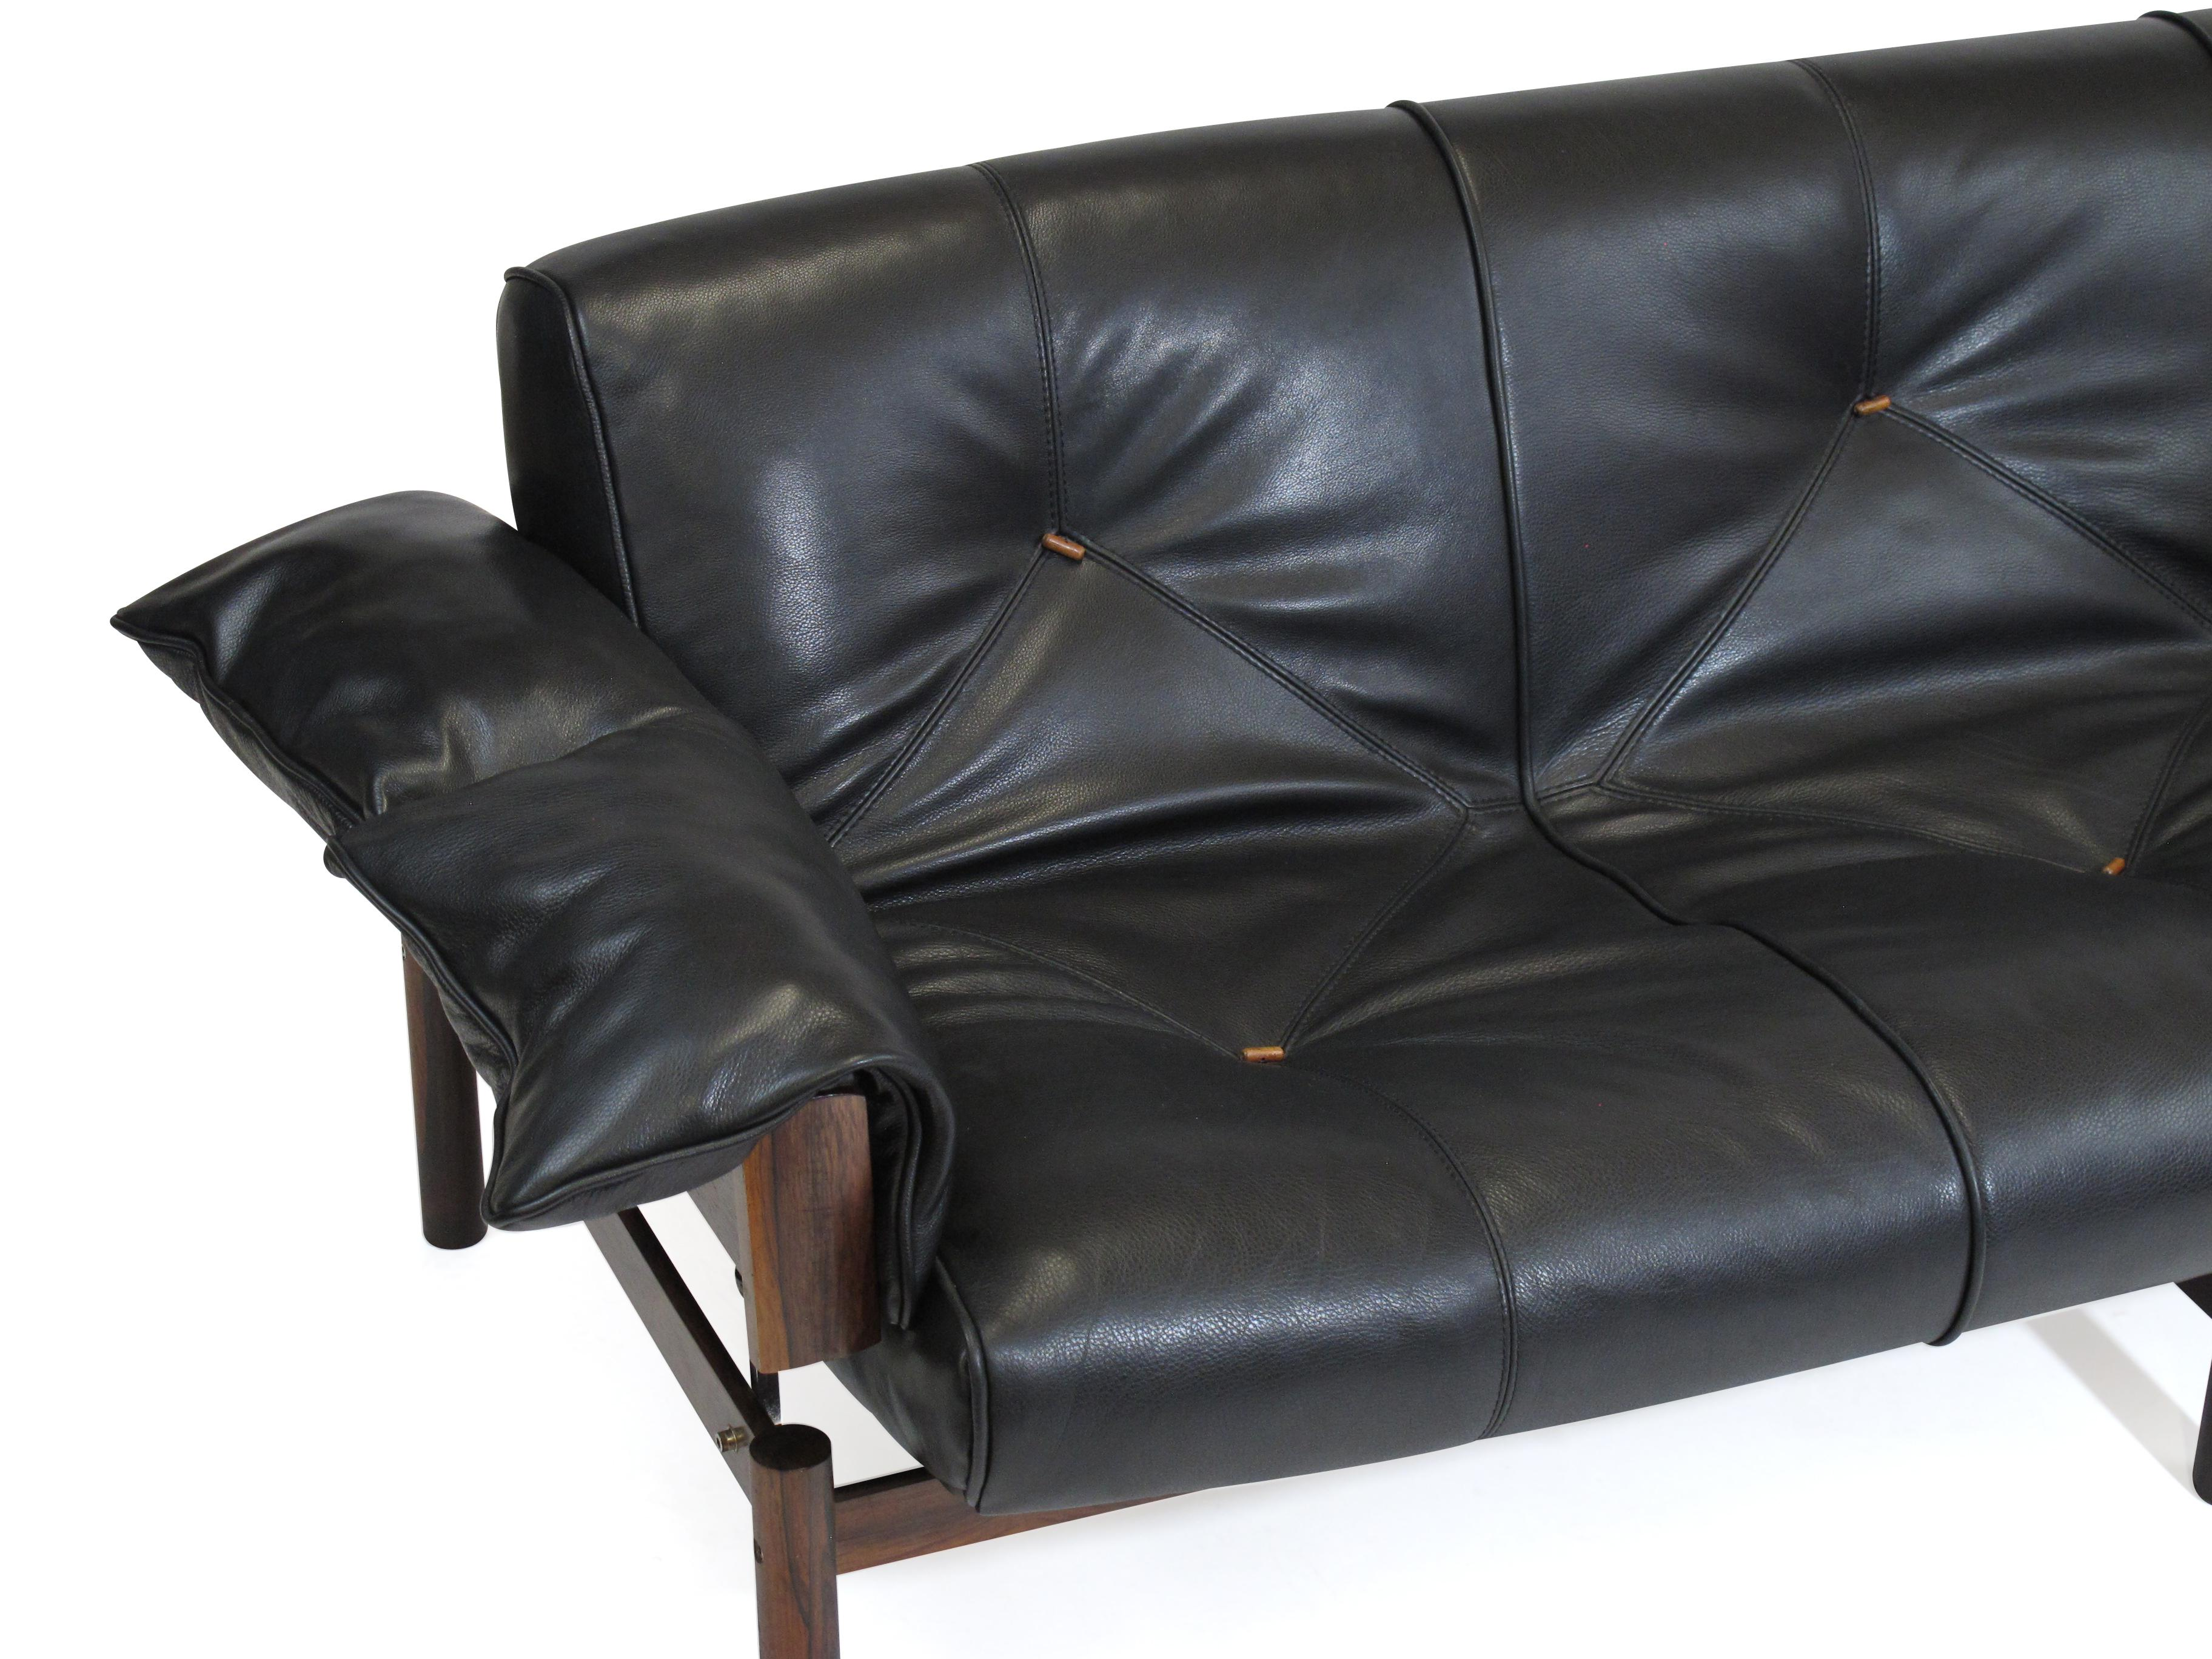 Attirant Percival Lafer Brazilian Modernist Rosewood Sofa And Chair In Black Leather